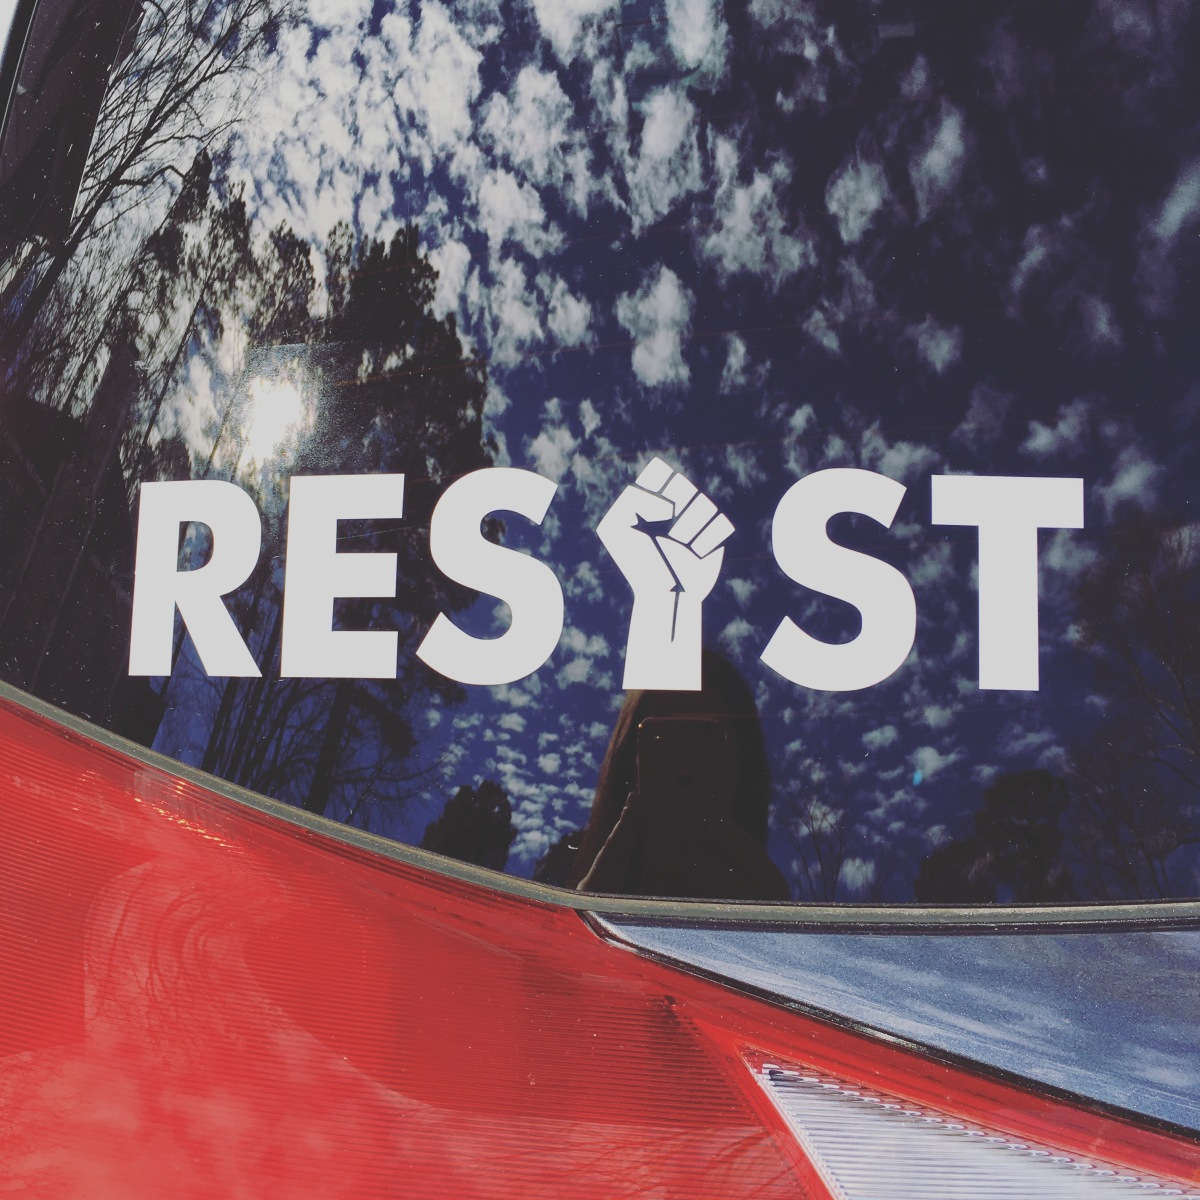 Coexist or contradict how about resist instead by katey zeh